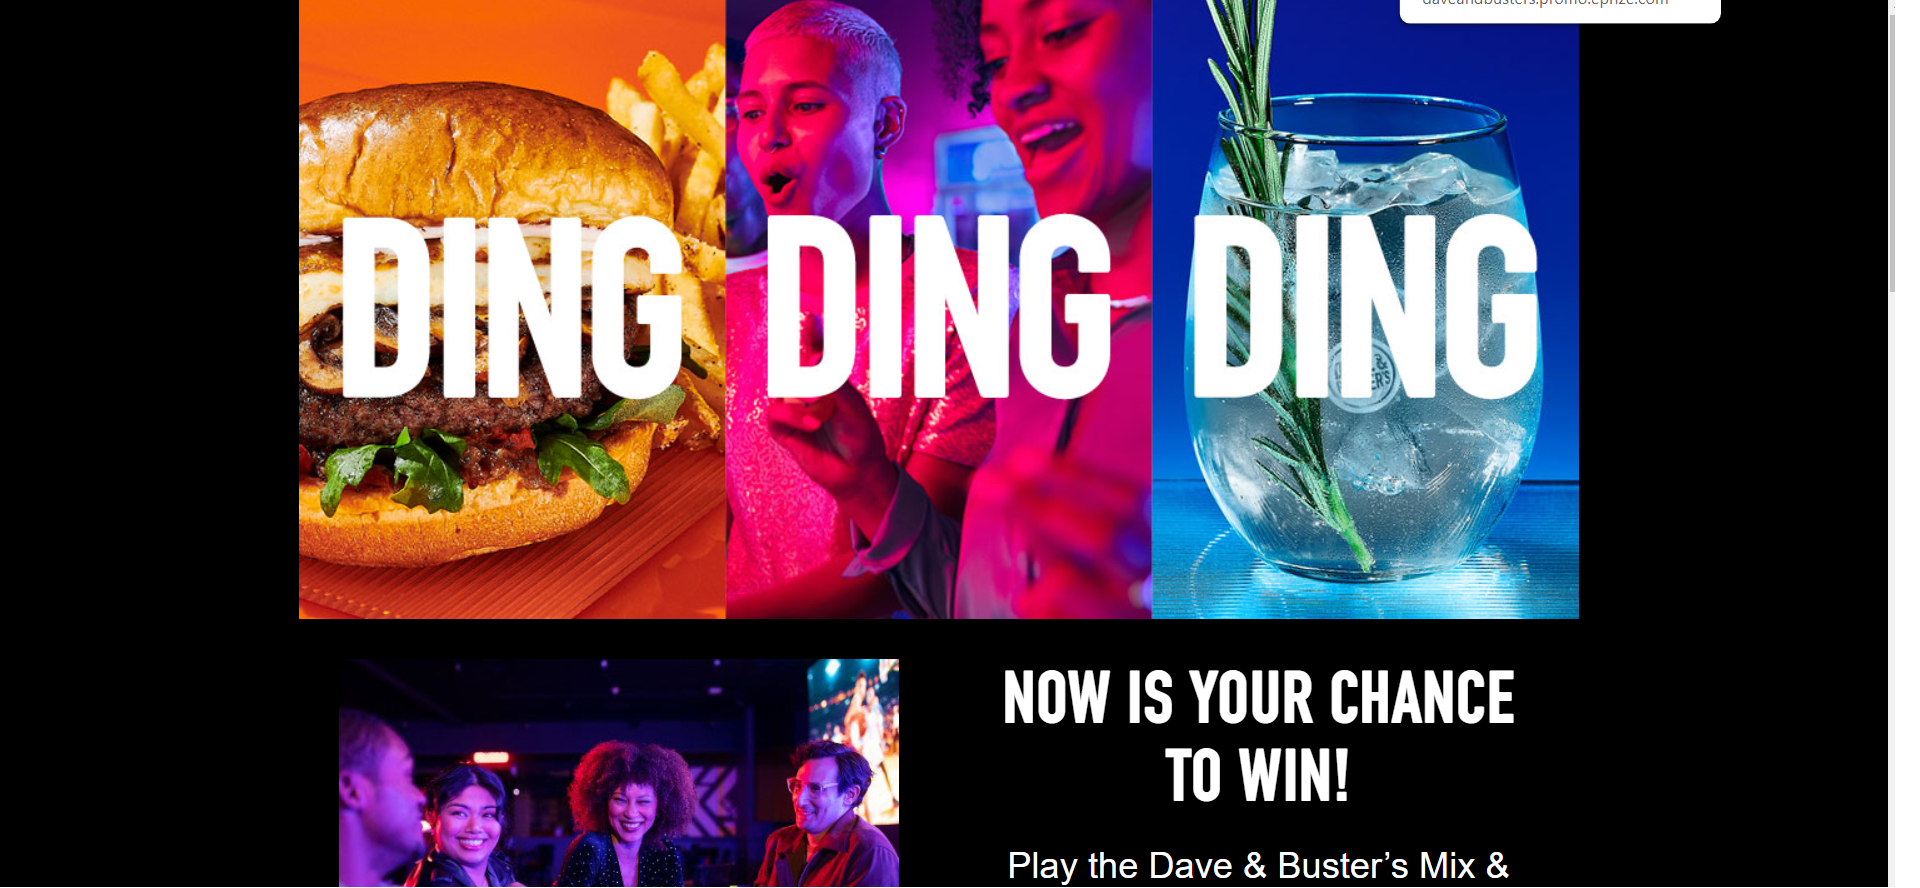 DAVE & BUSTER'S SUMMER SWEEPSTAKES